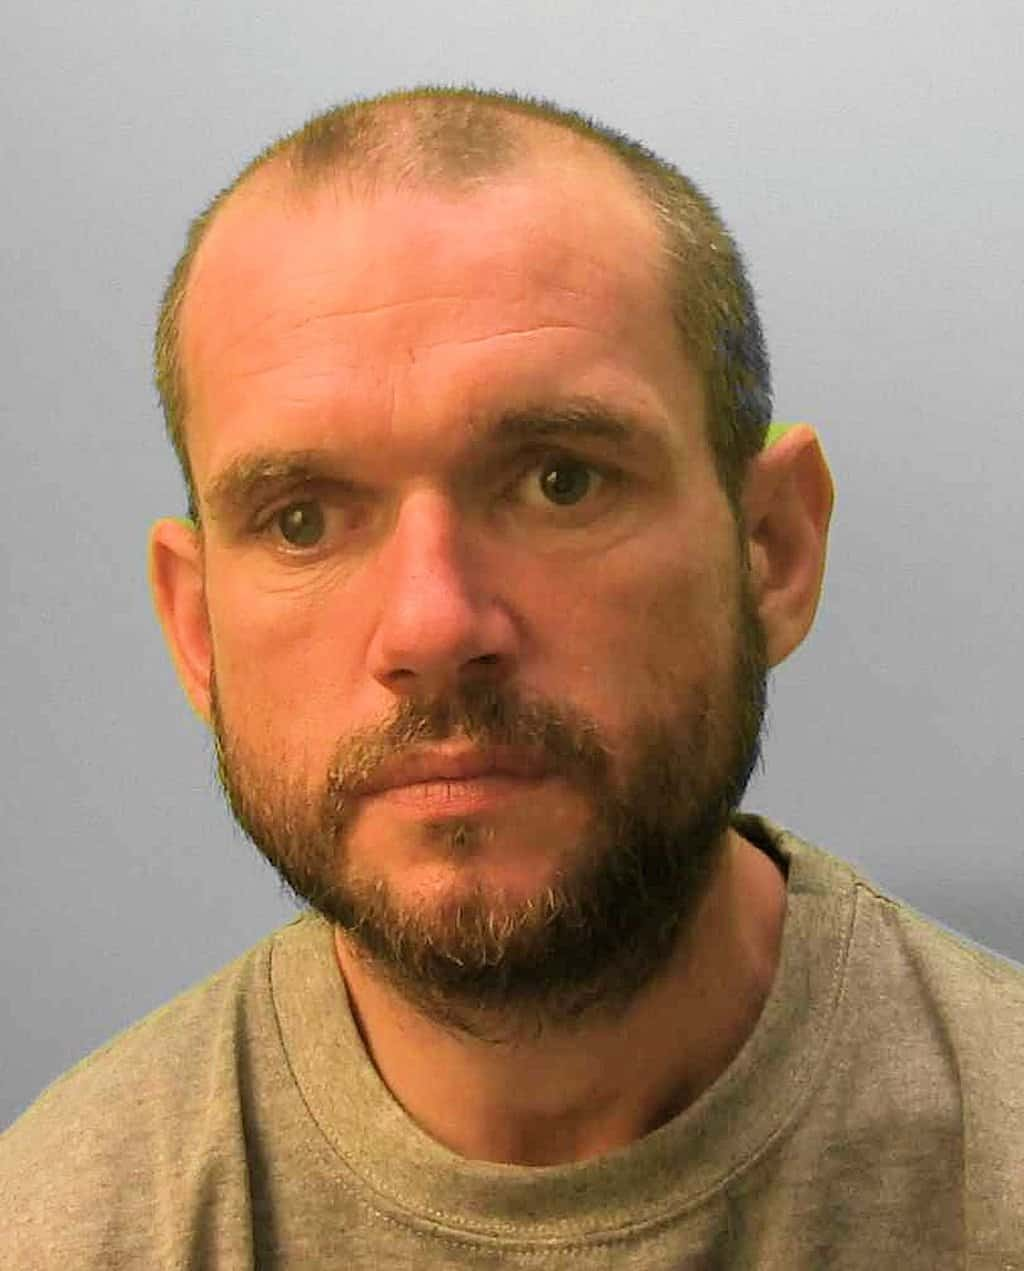 Man jailed for kicking security guard in the head